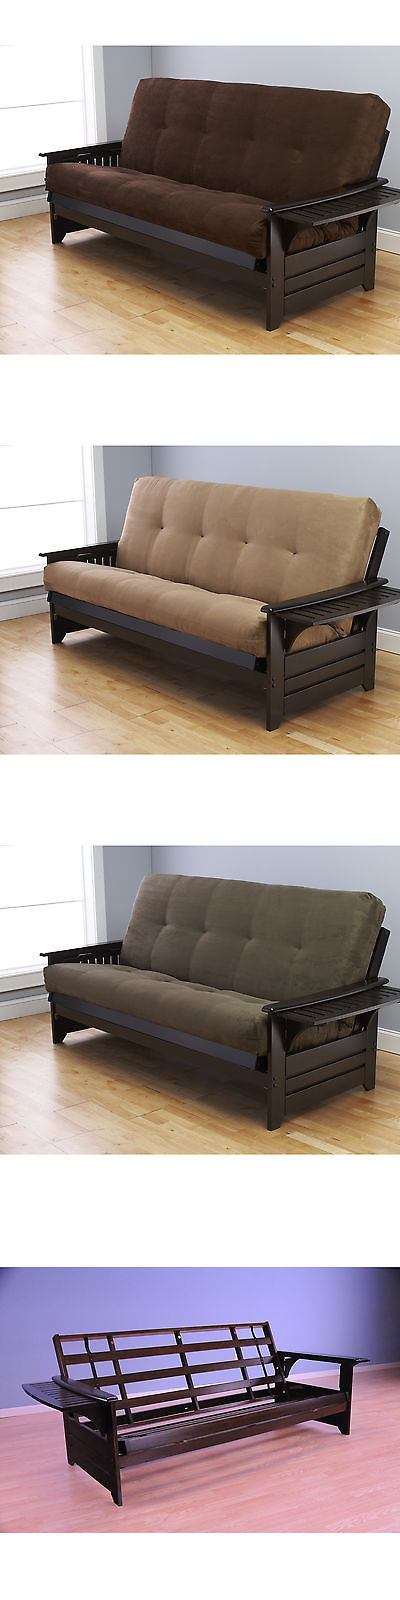 Futons Frames And Covers 131579 Somette Phoenix Queen Size Futon Sofa Bed With Hardwood Frame